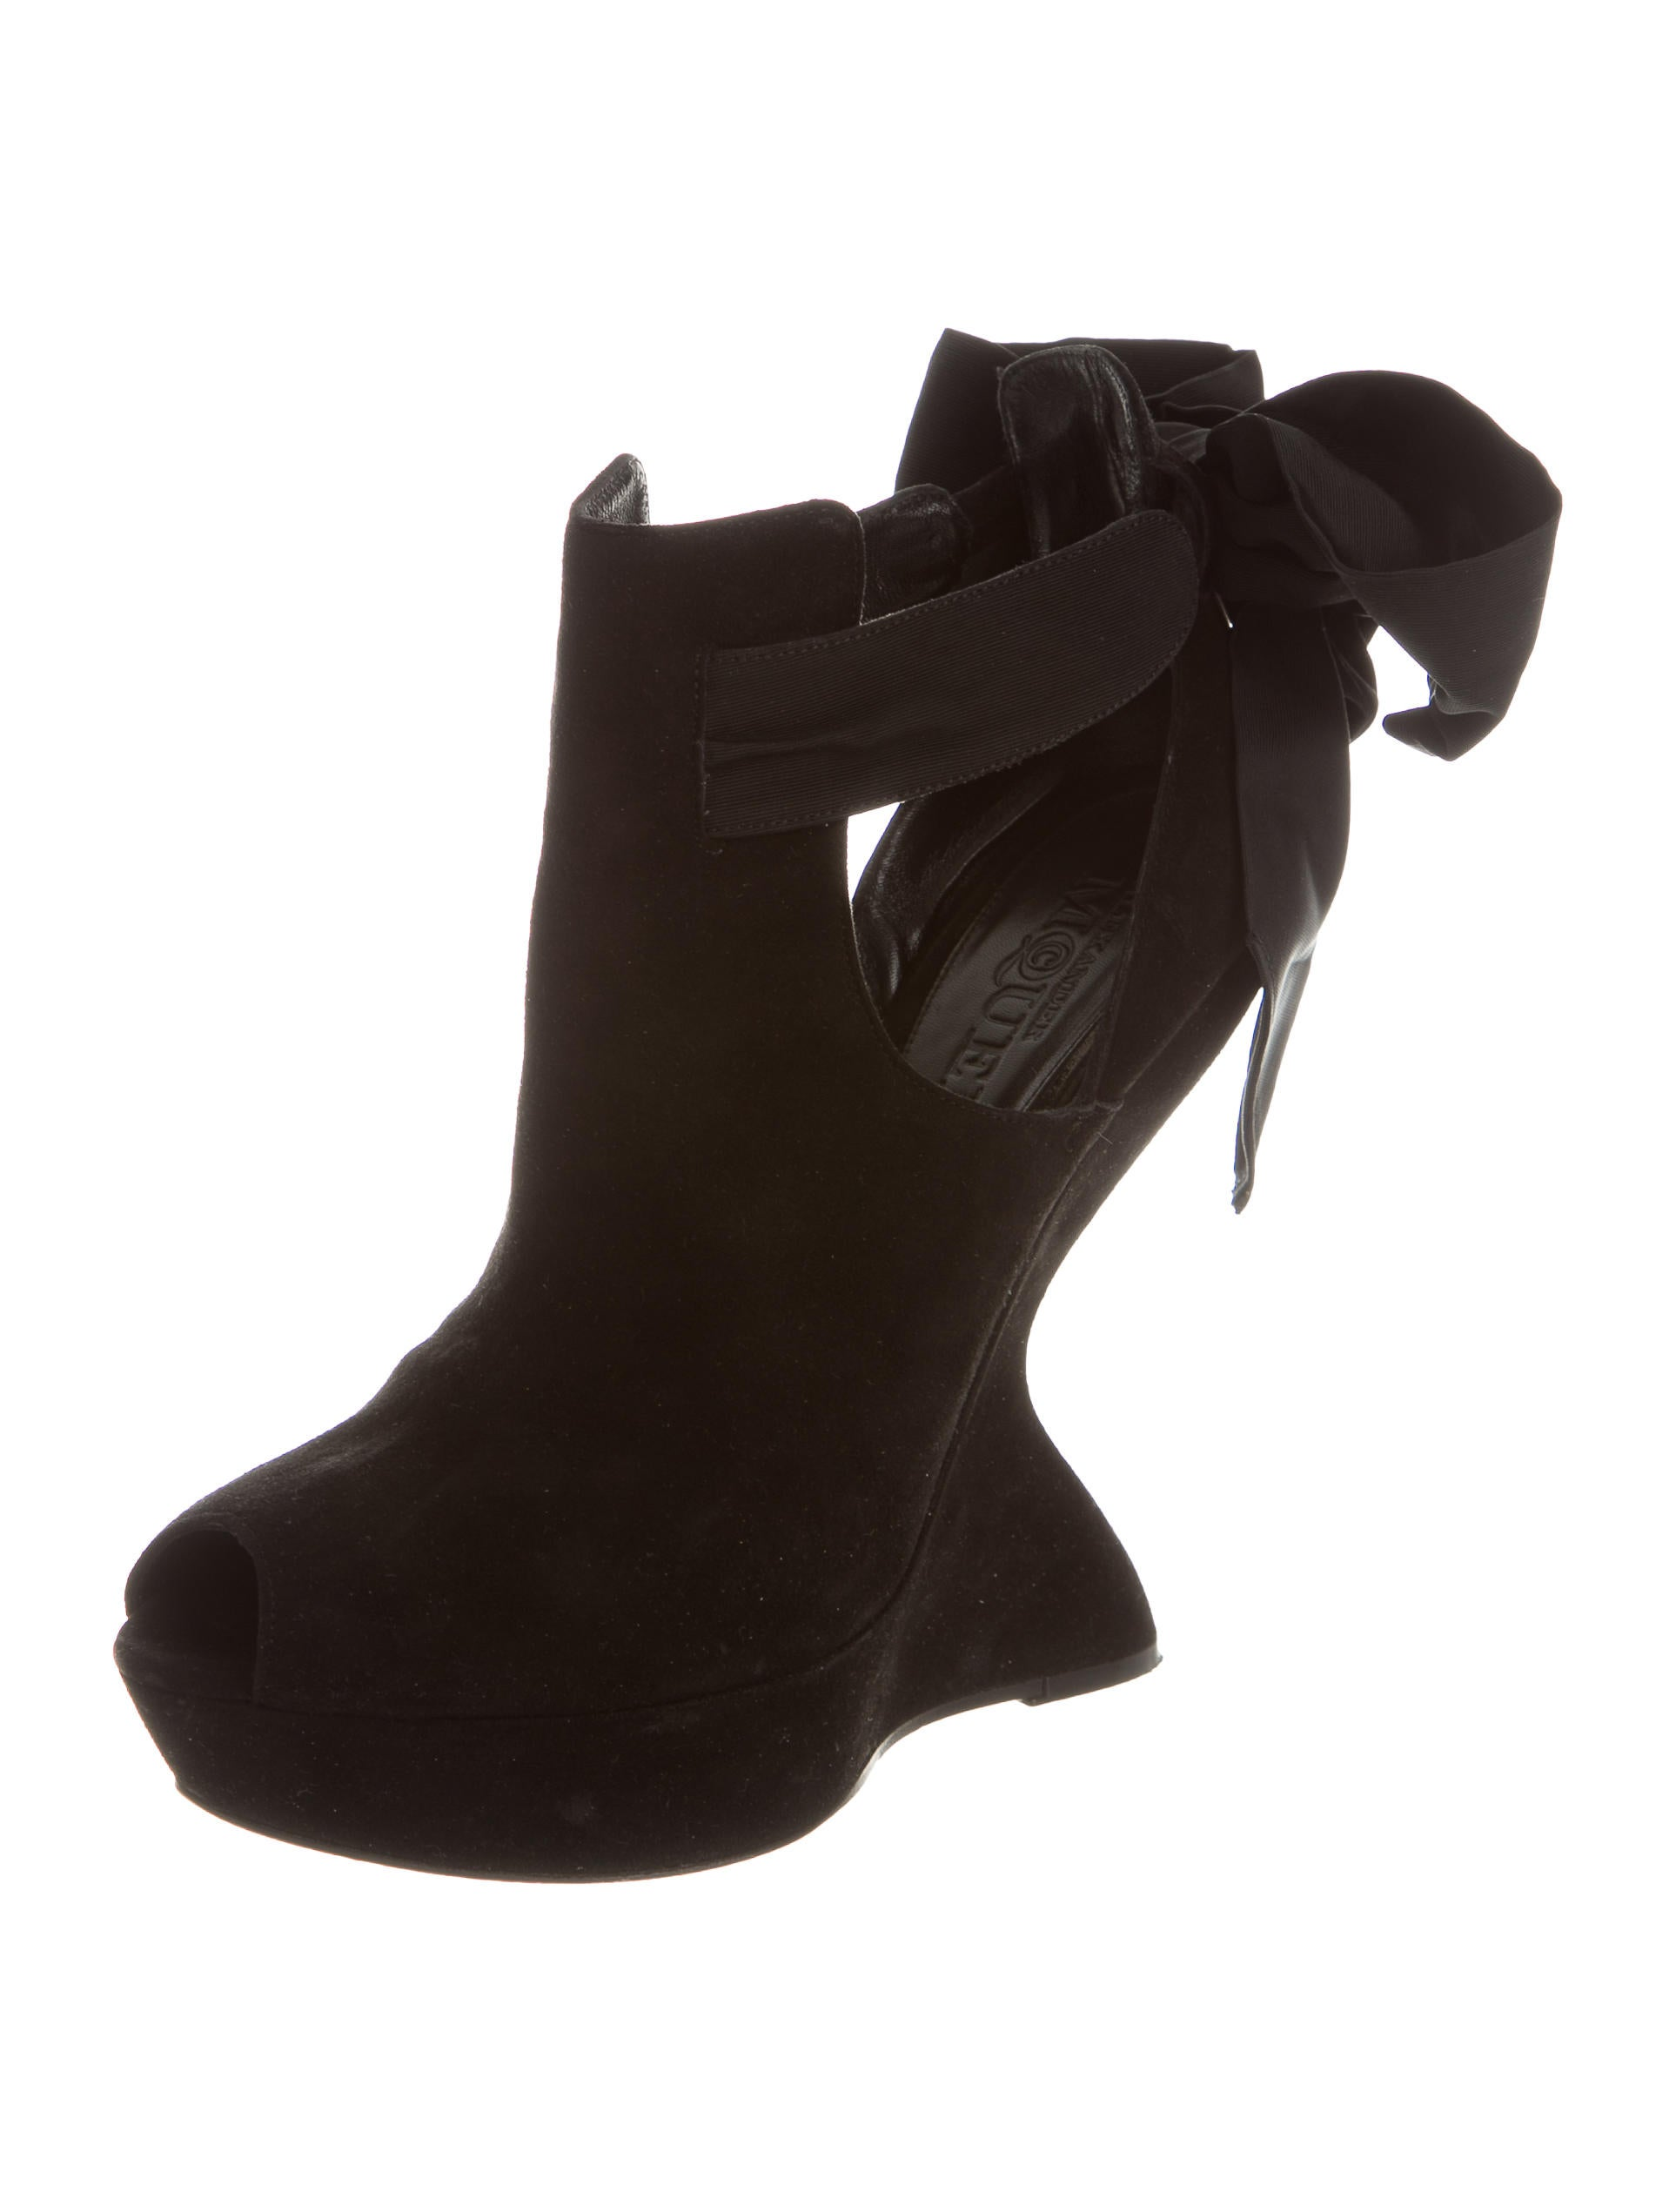 mcqueen bow accented wedge booties shoes